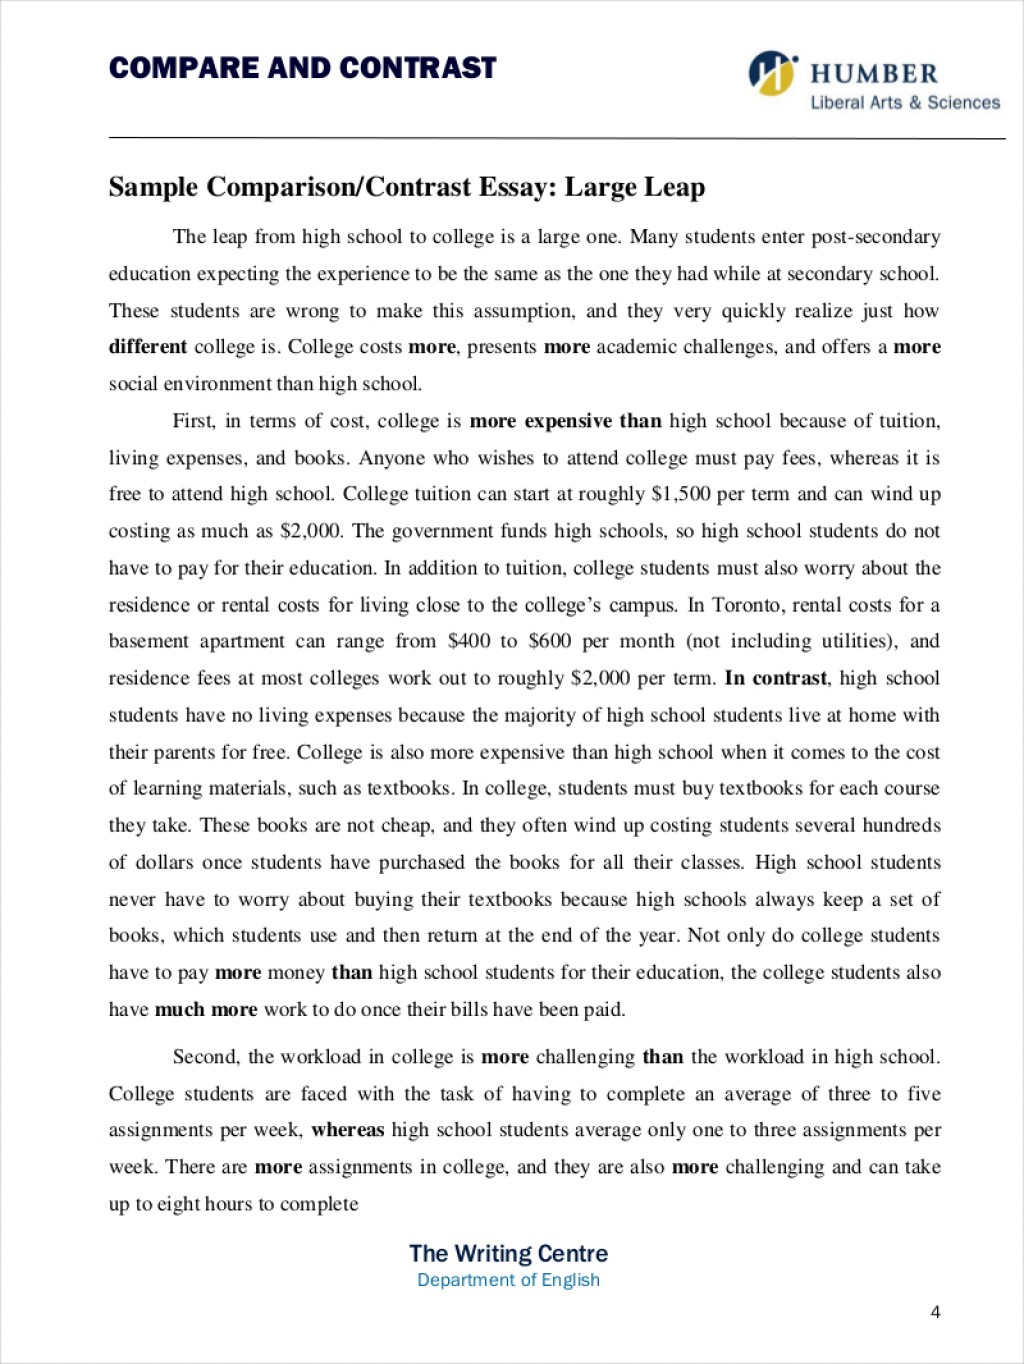 014 How To Write Compare And Contrast Essay Example Comparative Samples Free Pdf Format Download Throughout Examples Comparison Thesis Coles Thecolossus Co Within Ex Outstanding A Outline Powerpoint Introduction Large